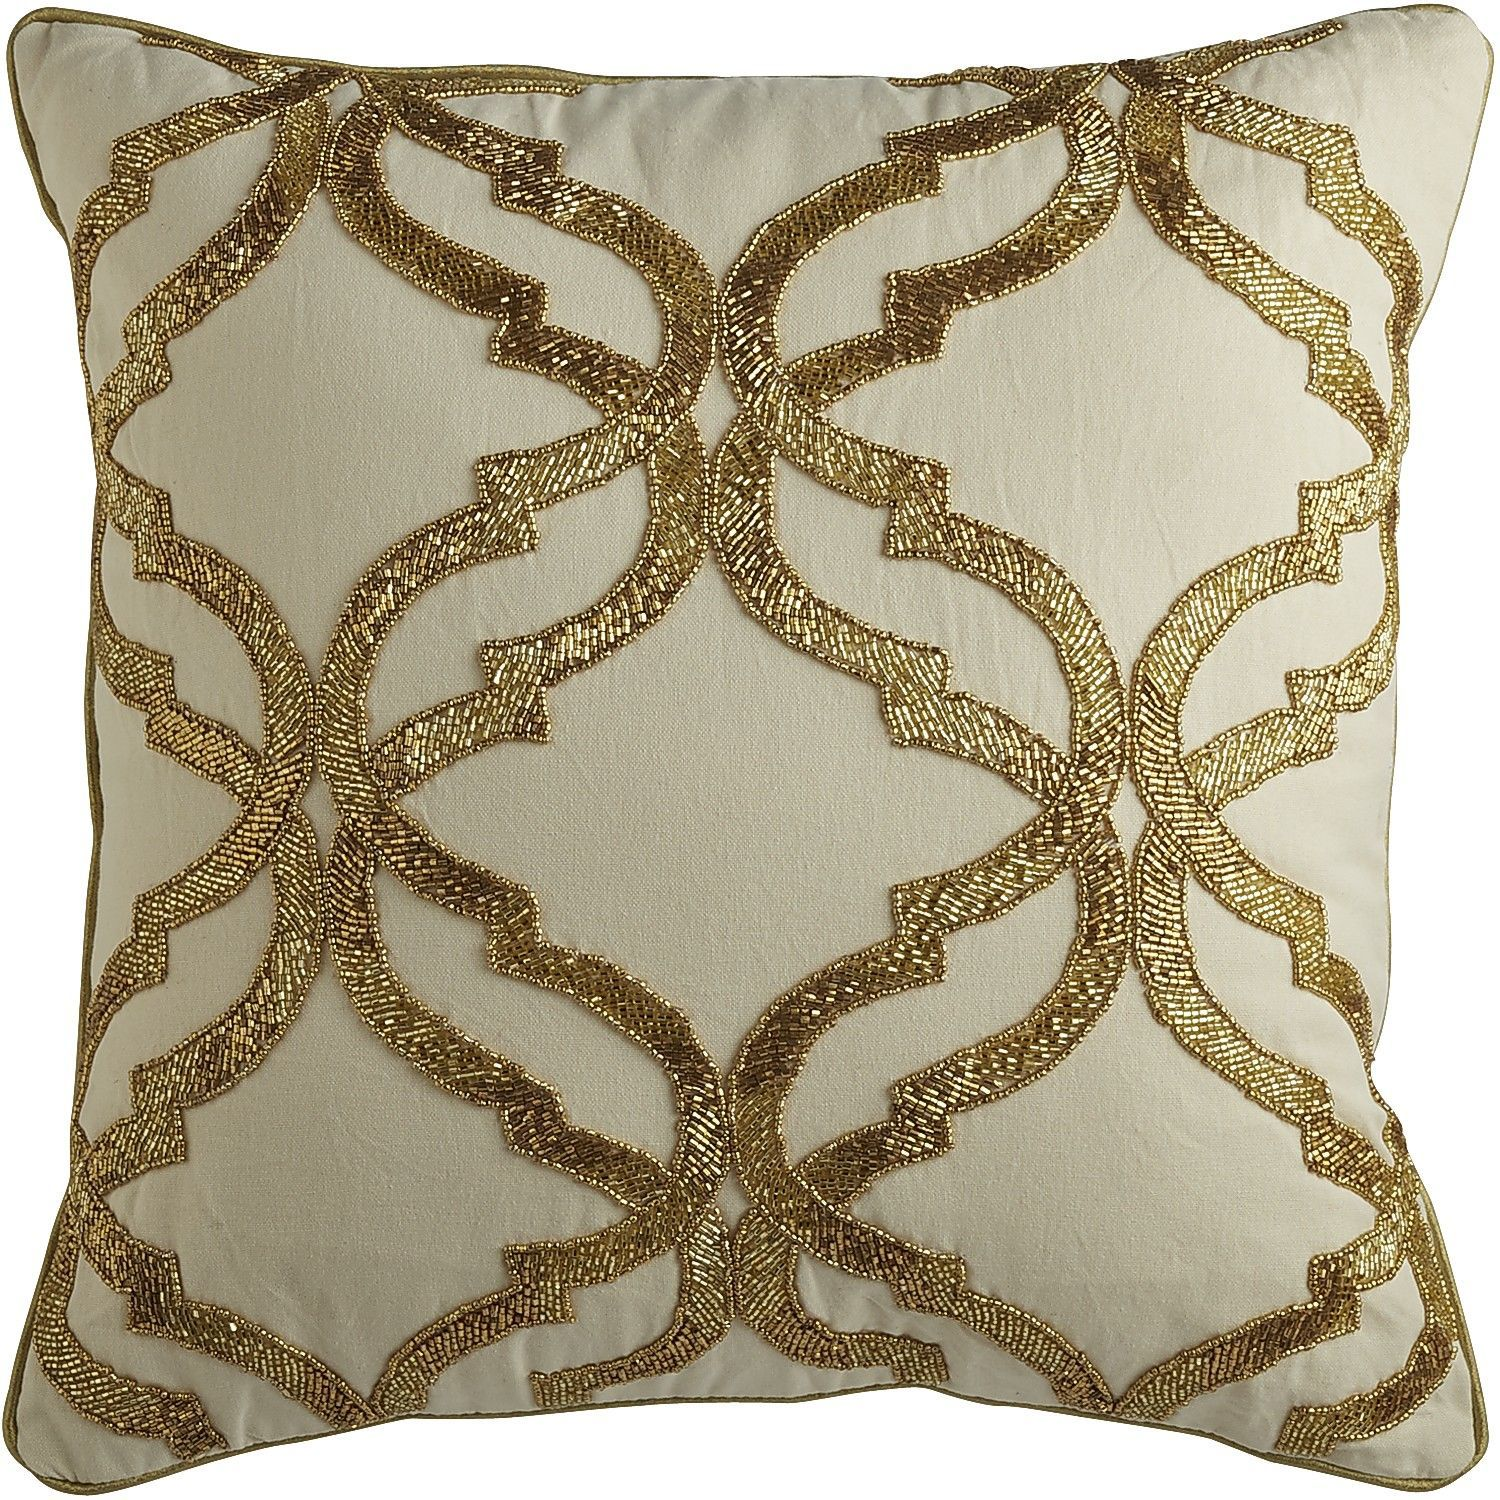 Gold Beaded Geometric Pillow Ivory Pier 1 Imports Ivory